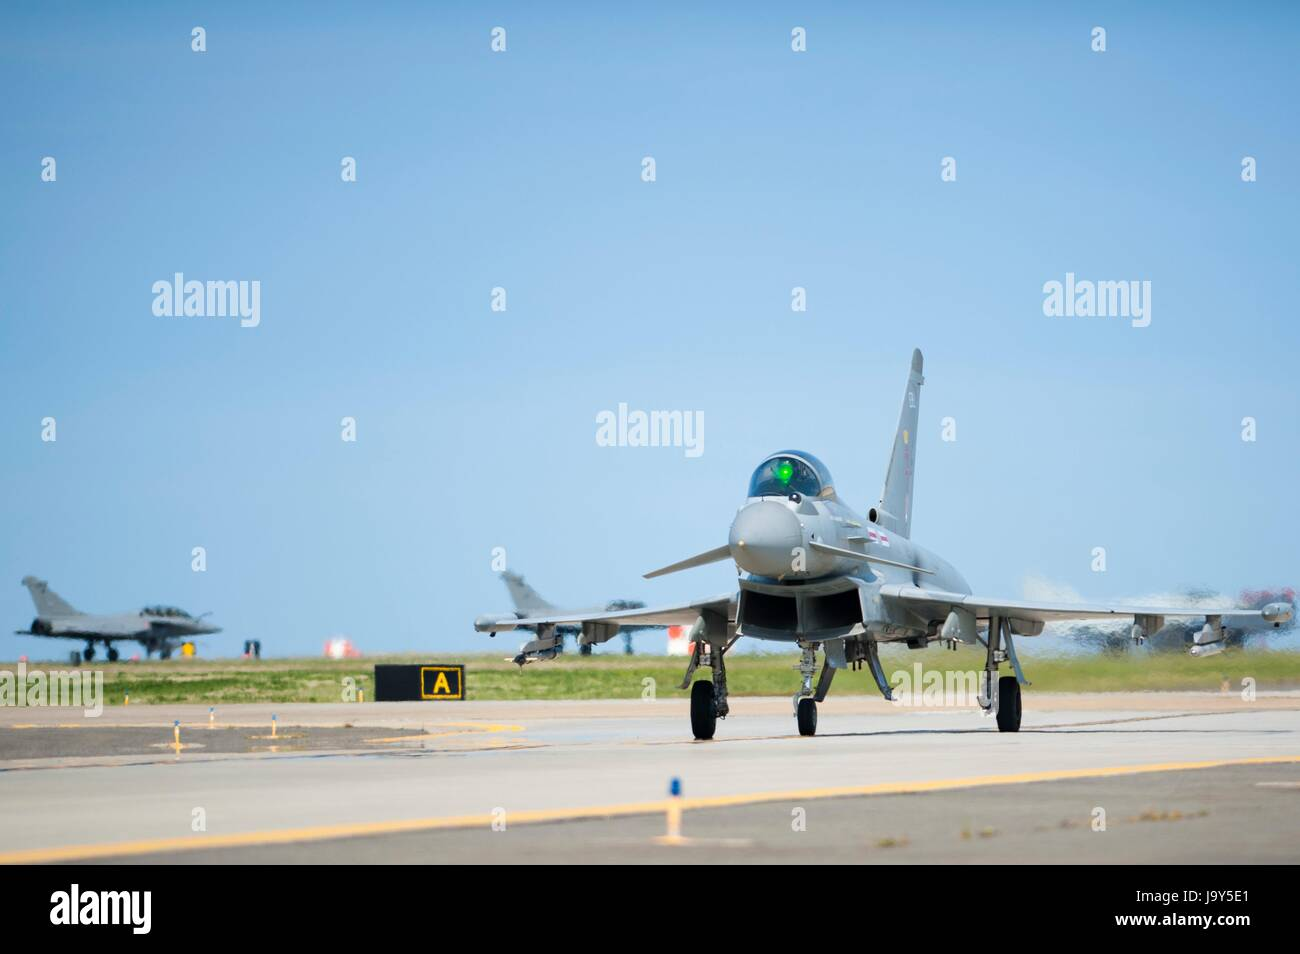 A British Royal Air Force Eurofighter Typhoon swing-role combat fighter aircraft lands on the runway at Joint Base Stock Photo